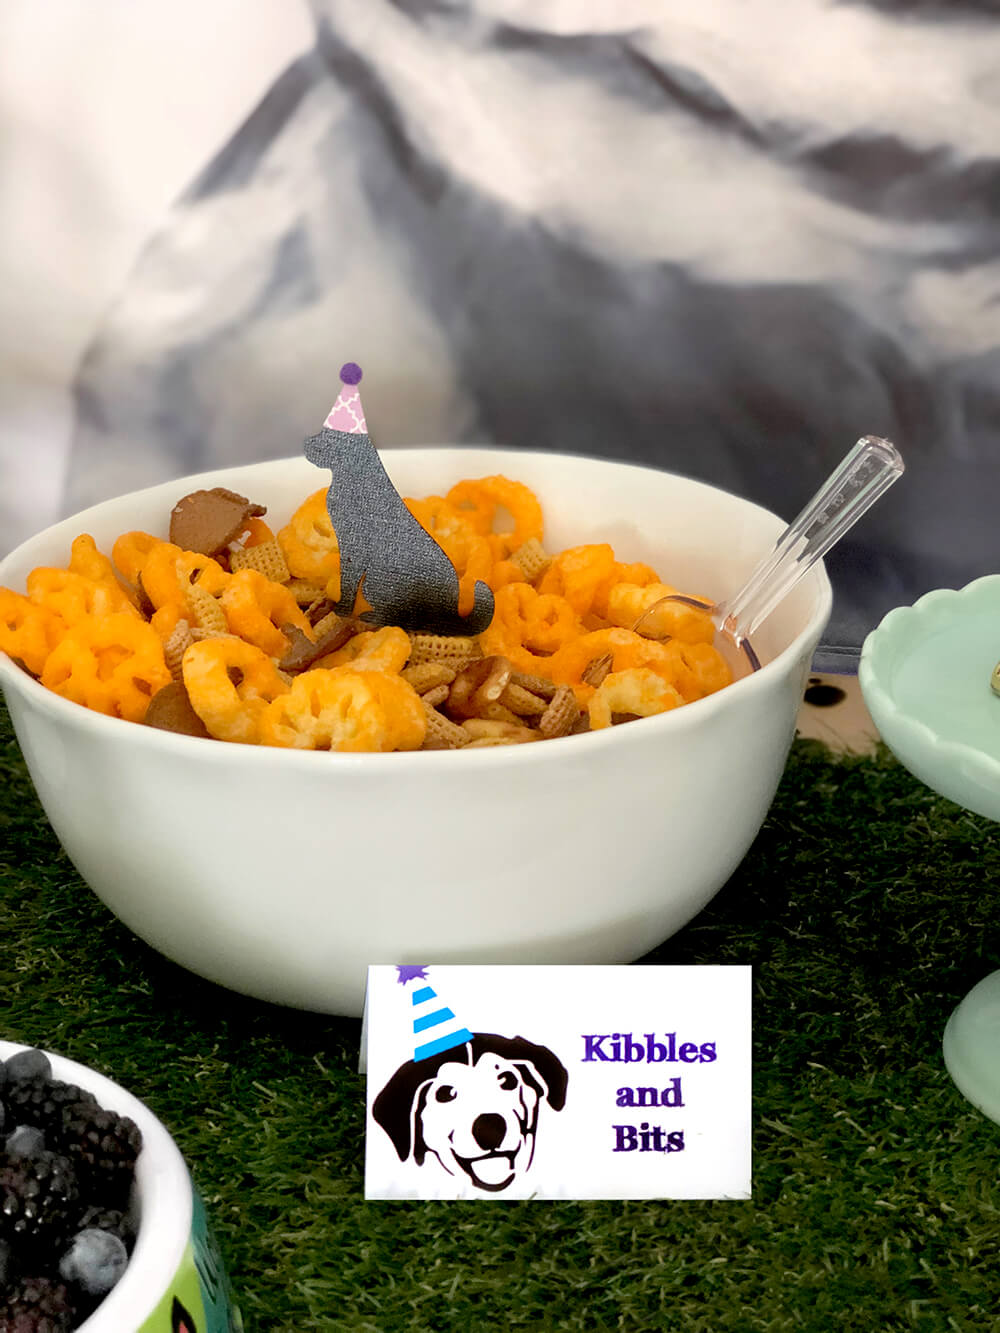 Kibbles and Bits party snacks - Puppy Themed Birthday Party Food Ideas